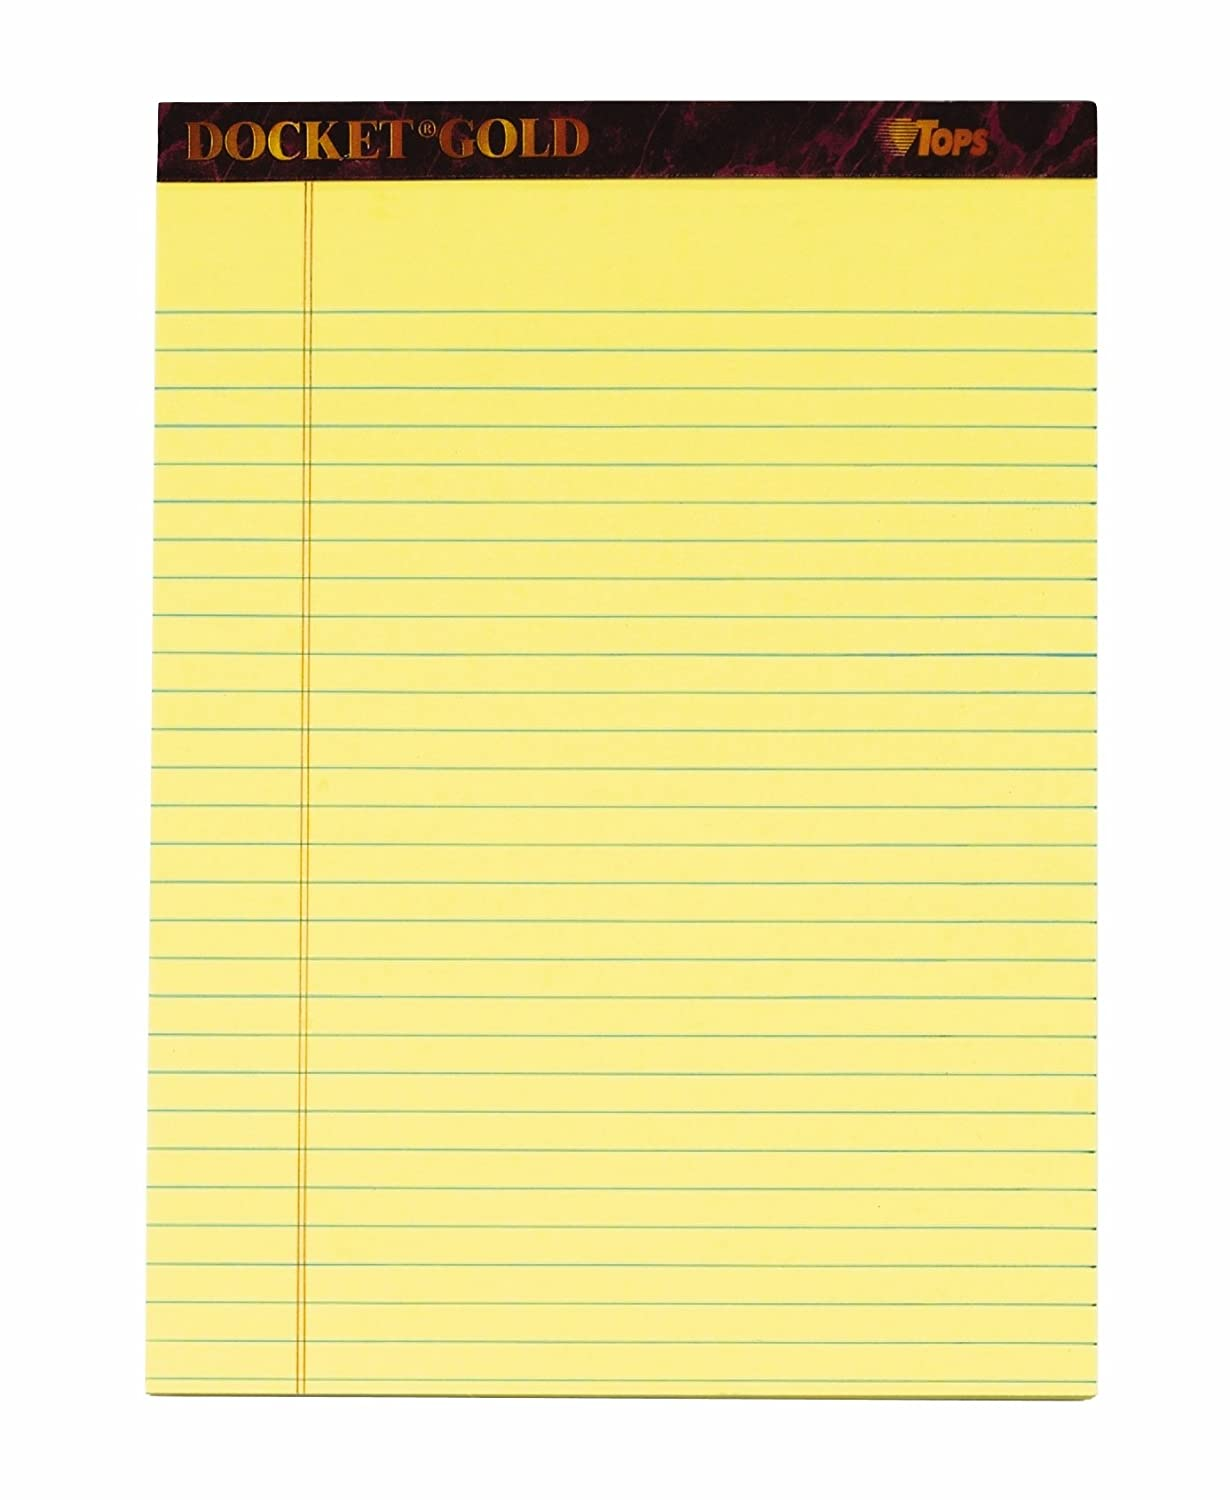 tops Docket Gold writing tablet, 8 – 1/2 x 11 – 3/10,2 cm, perforato, Canary, Legal/Wide Rule, 50 fogli per blocco, 6 per Pack (63956) 8 - 1/2 x 11 - 3/10 TOPS Business Forms Inc.